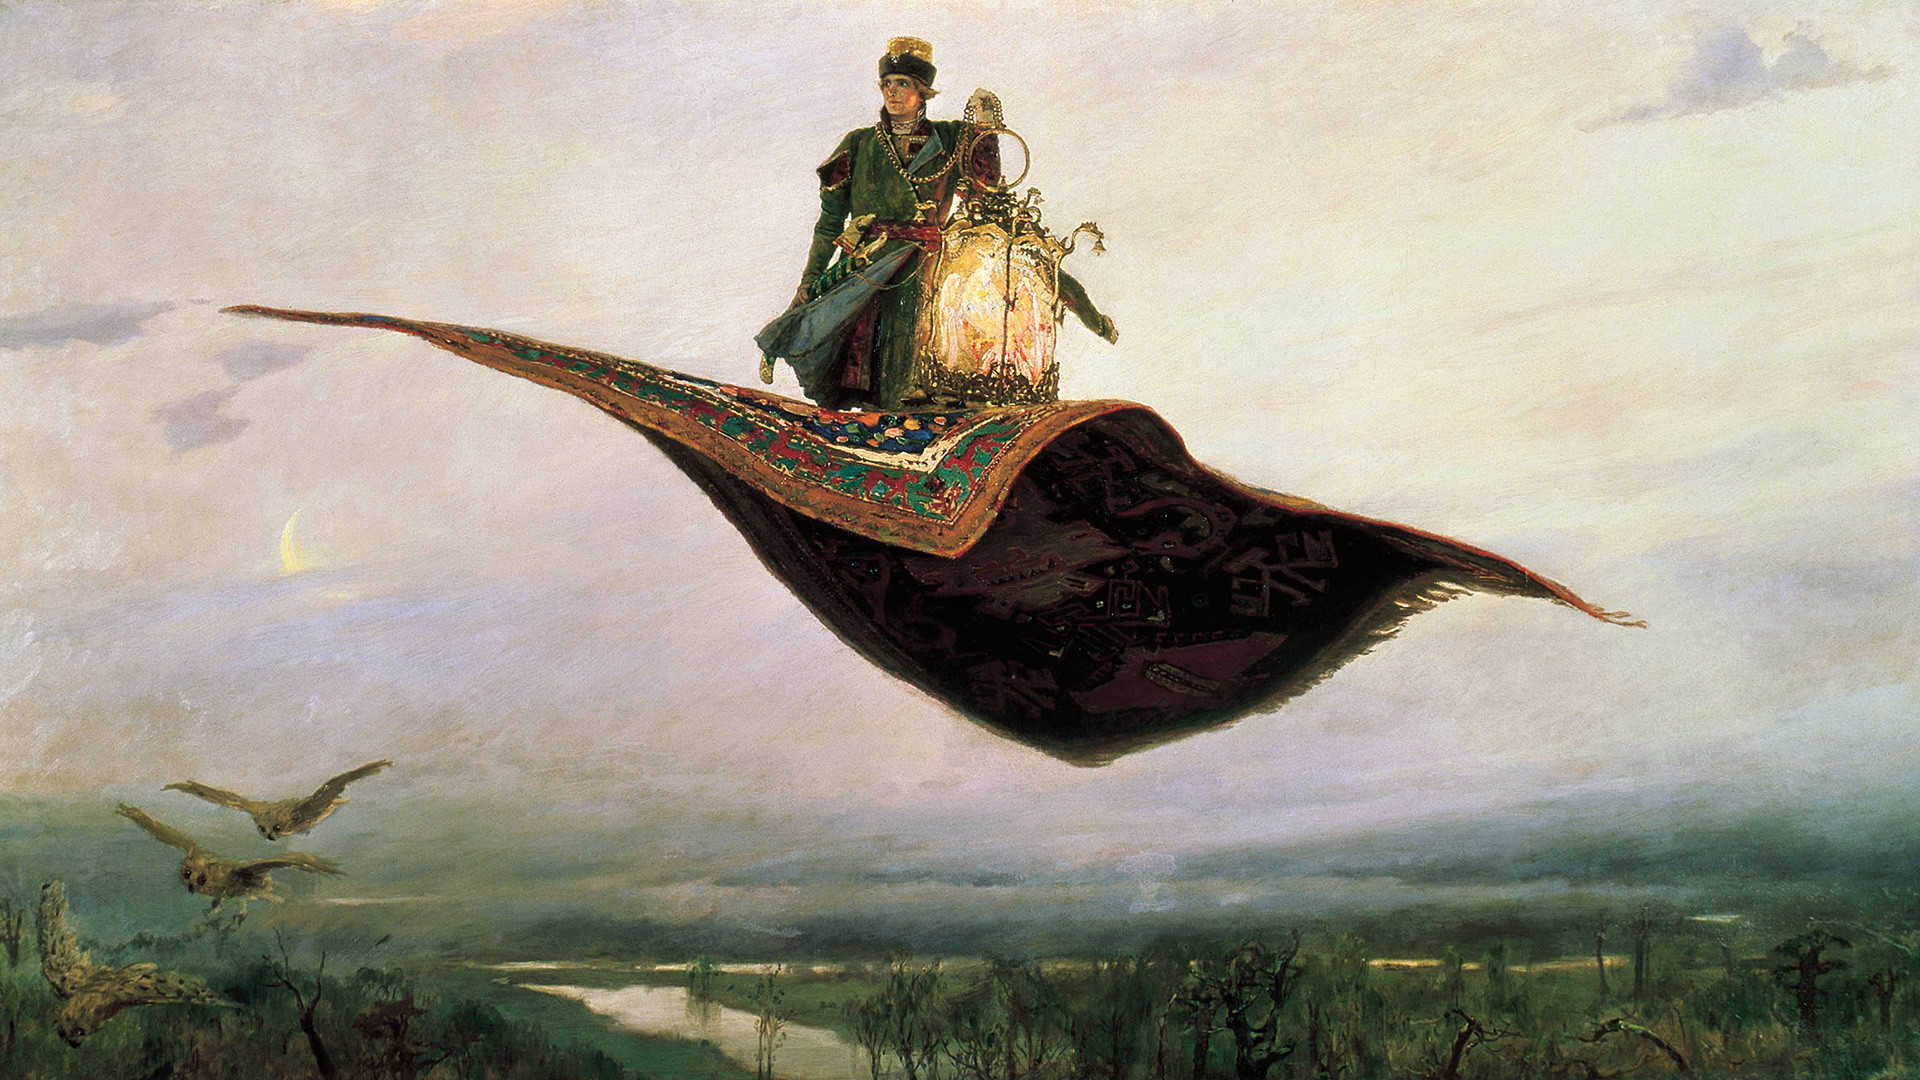 Anyone who has seen Aladdin knows what a magic carpet looks like. A prototype made in Russia is similar, but the pattern might differ.